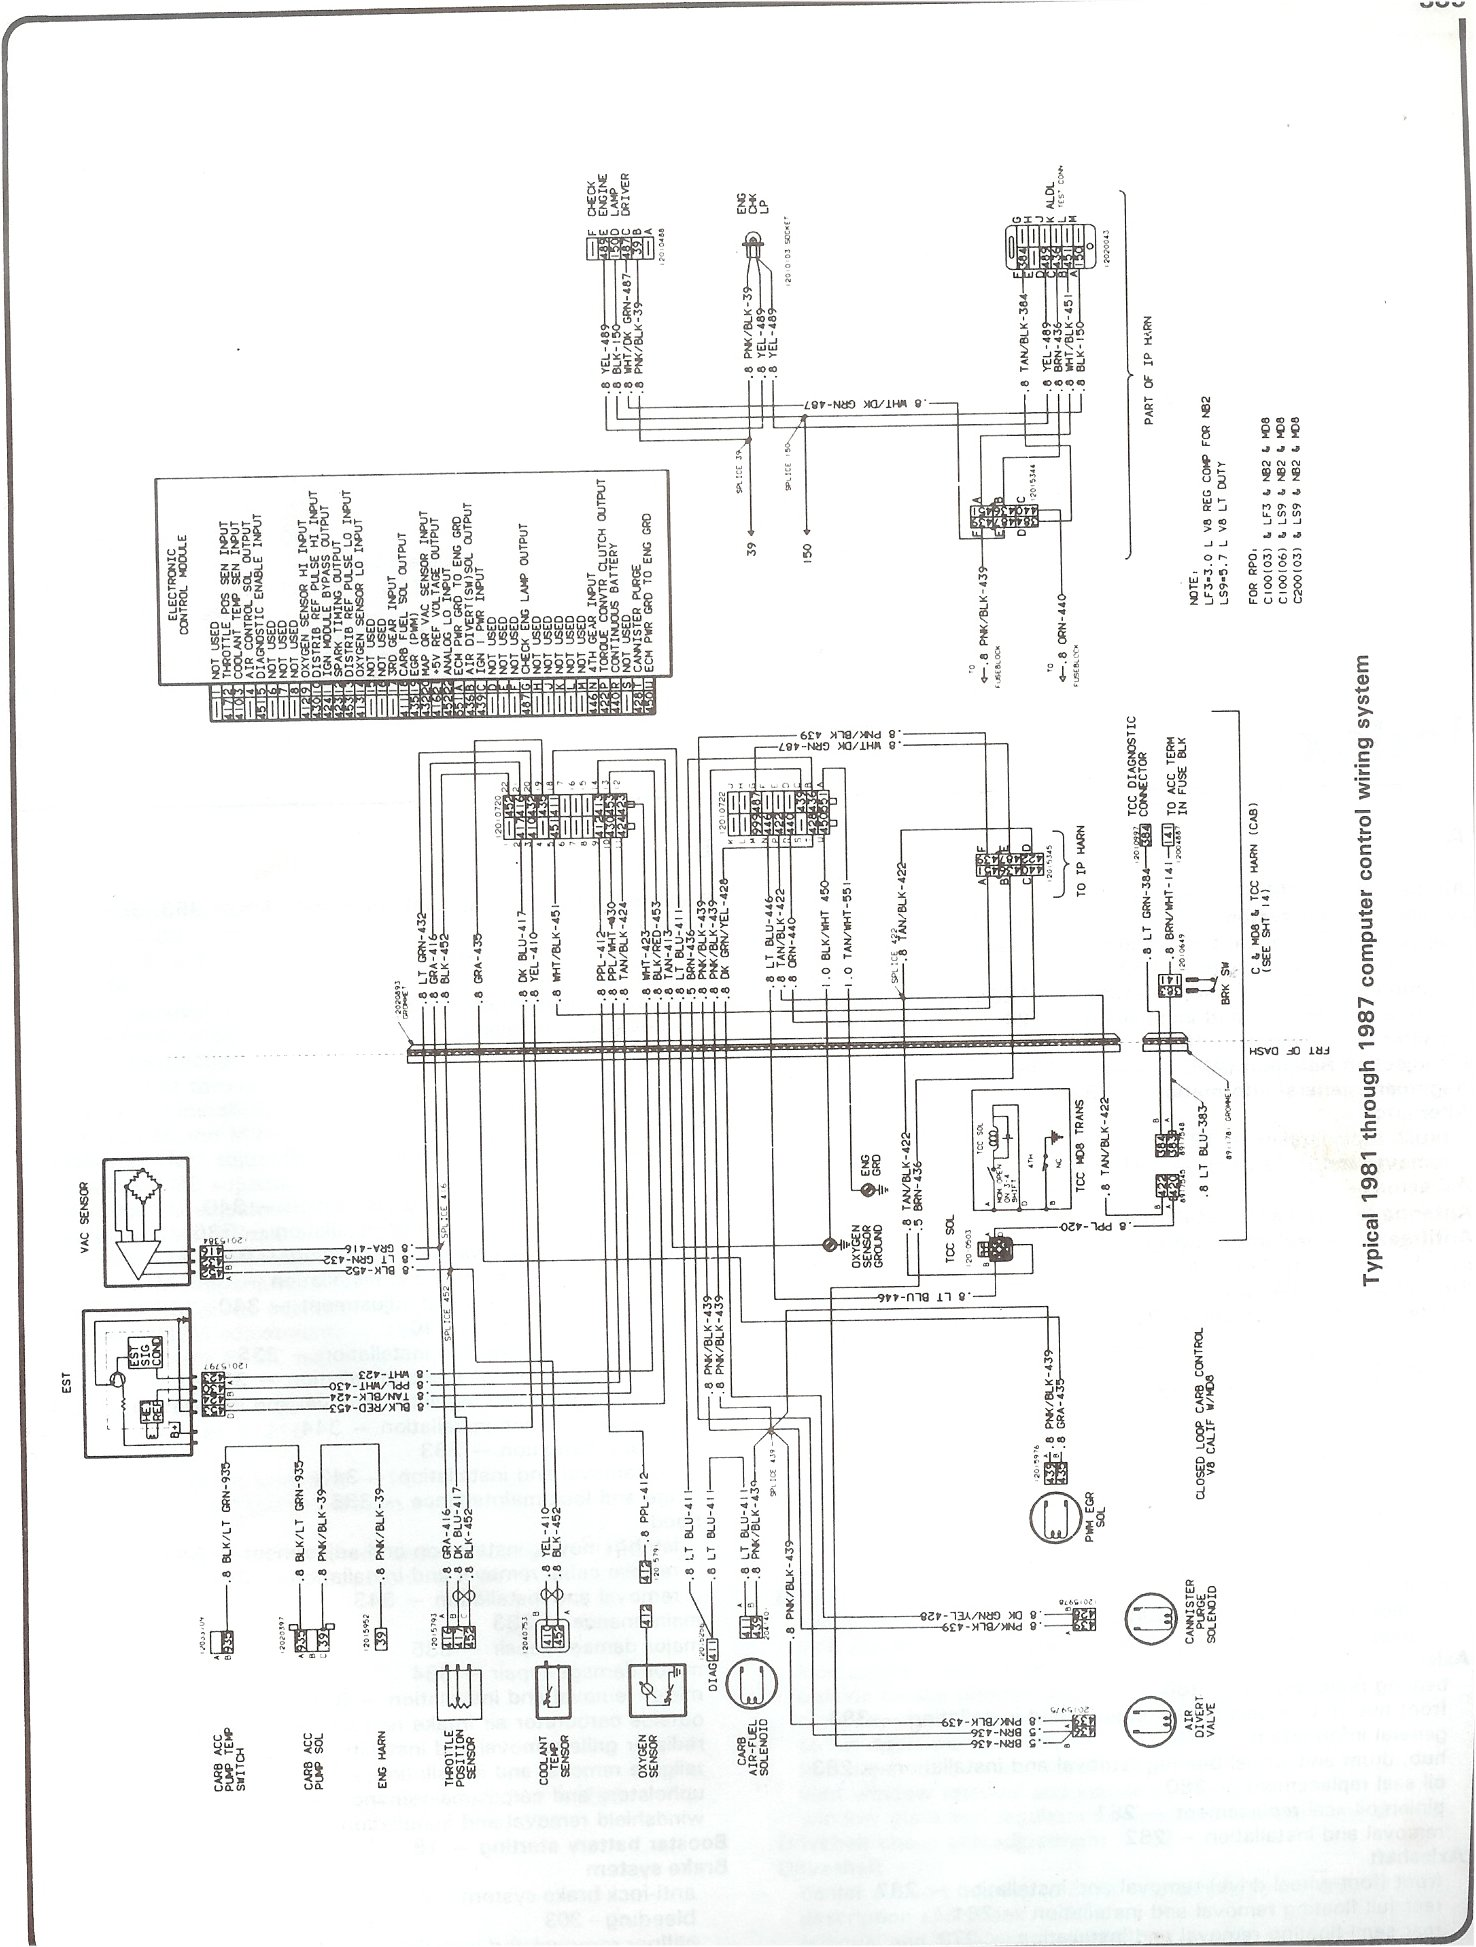 81 87_computer_control_wiring complete 73 87 wiring diagrams Chevy Wiring Diagrams Color at honlapkeszites.co